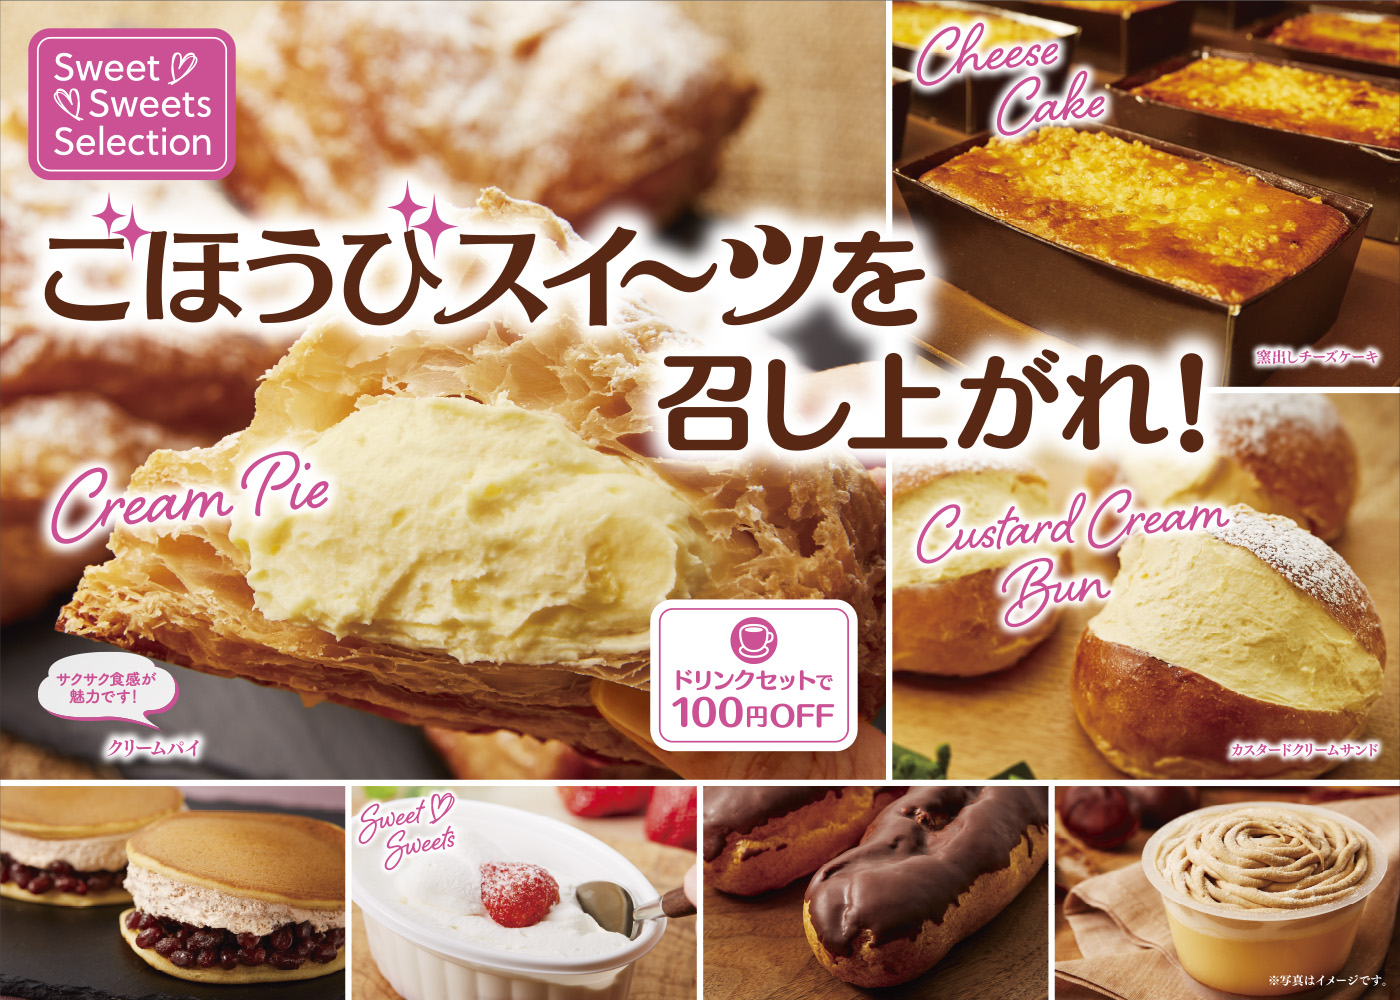 『Sweet Sweets Selection』のお知らせ